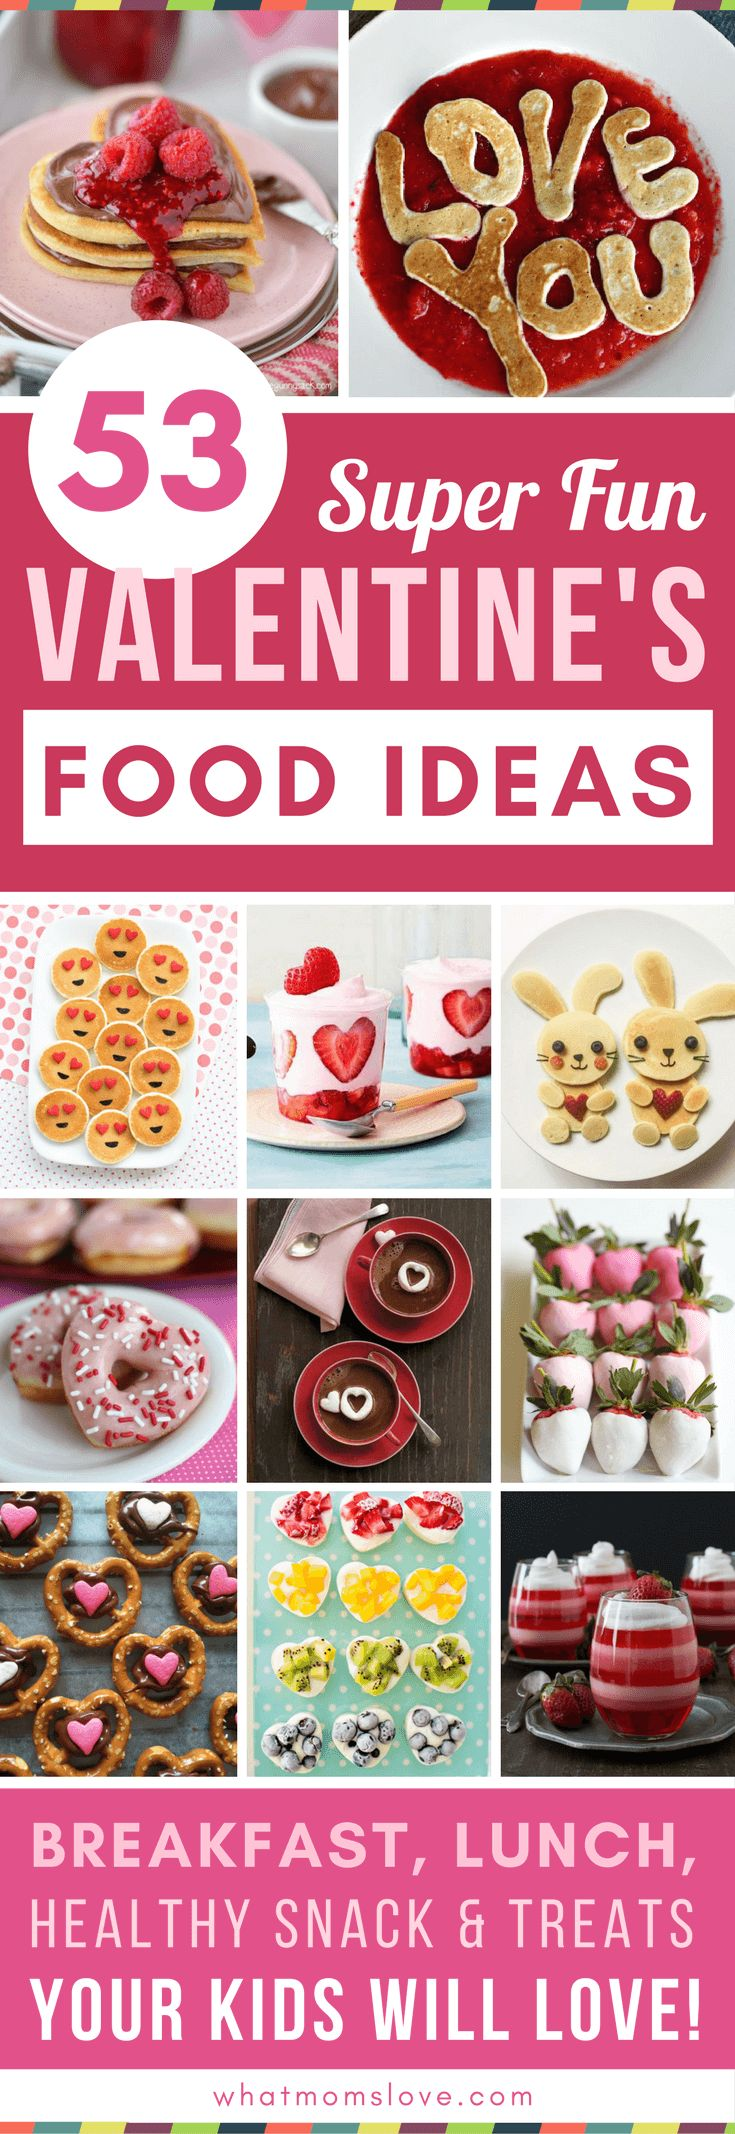 Valentines Day Food Ideas for Kids | Fun recipes to make for families including Valentine breakfast, lunch, healthy snacks, sweet treats and desserts. Lots of cute ideas for children to bring into their school classrooms to share with friends too!